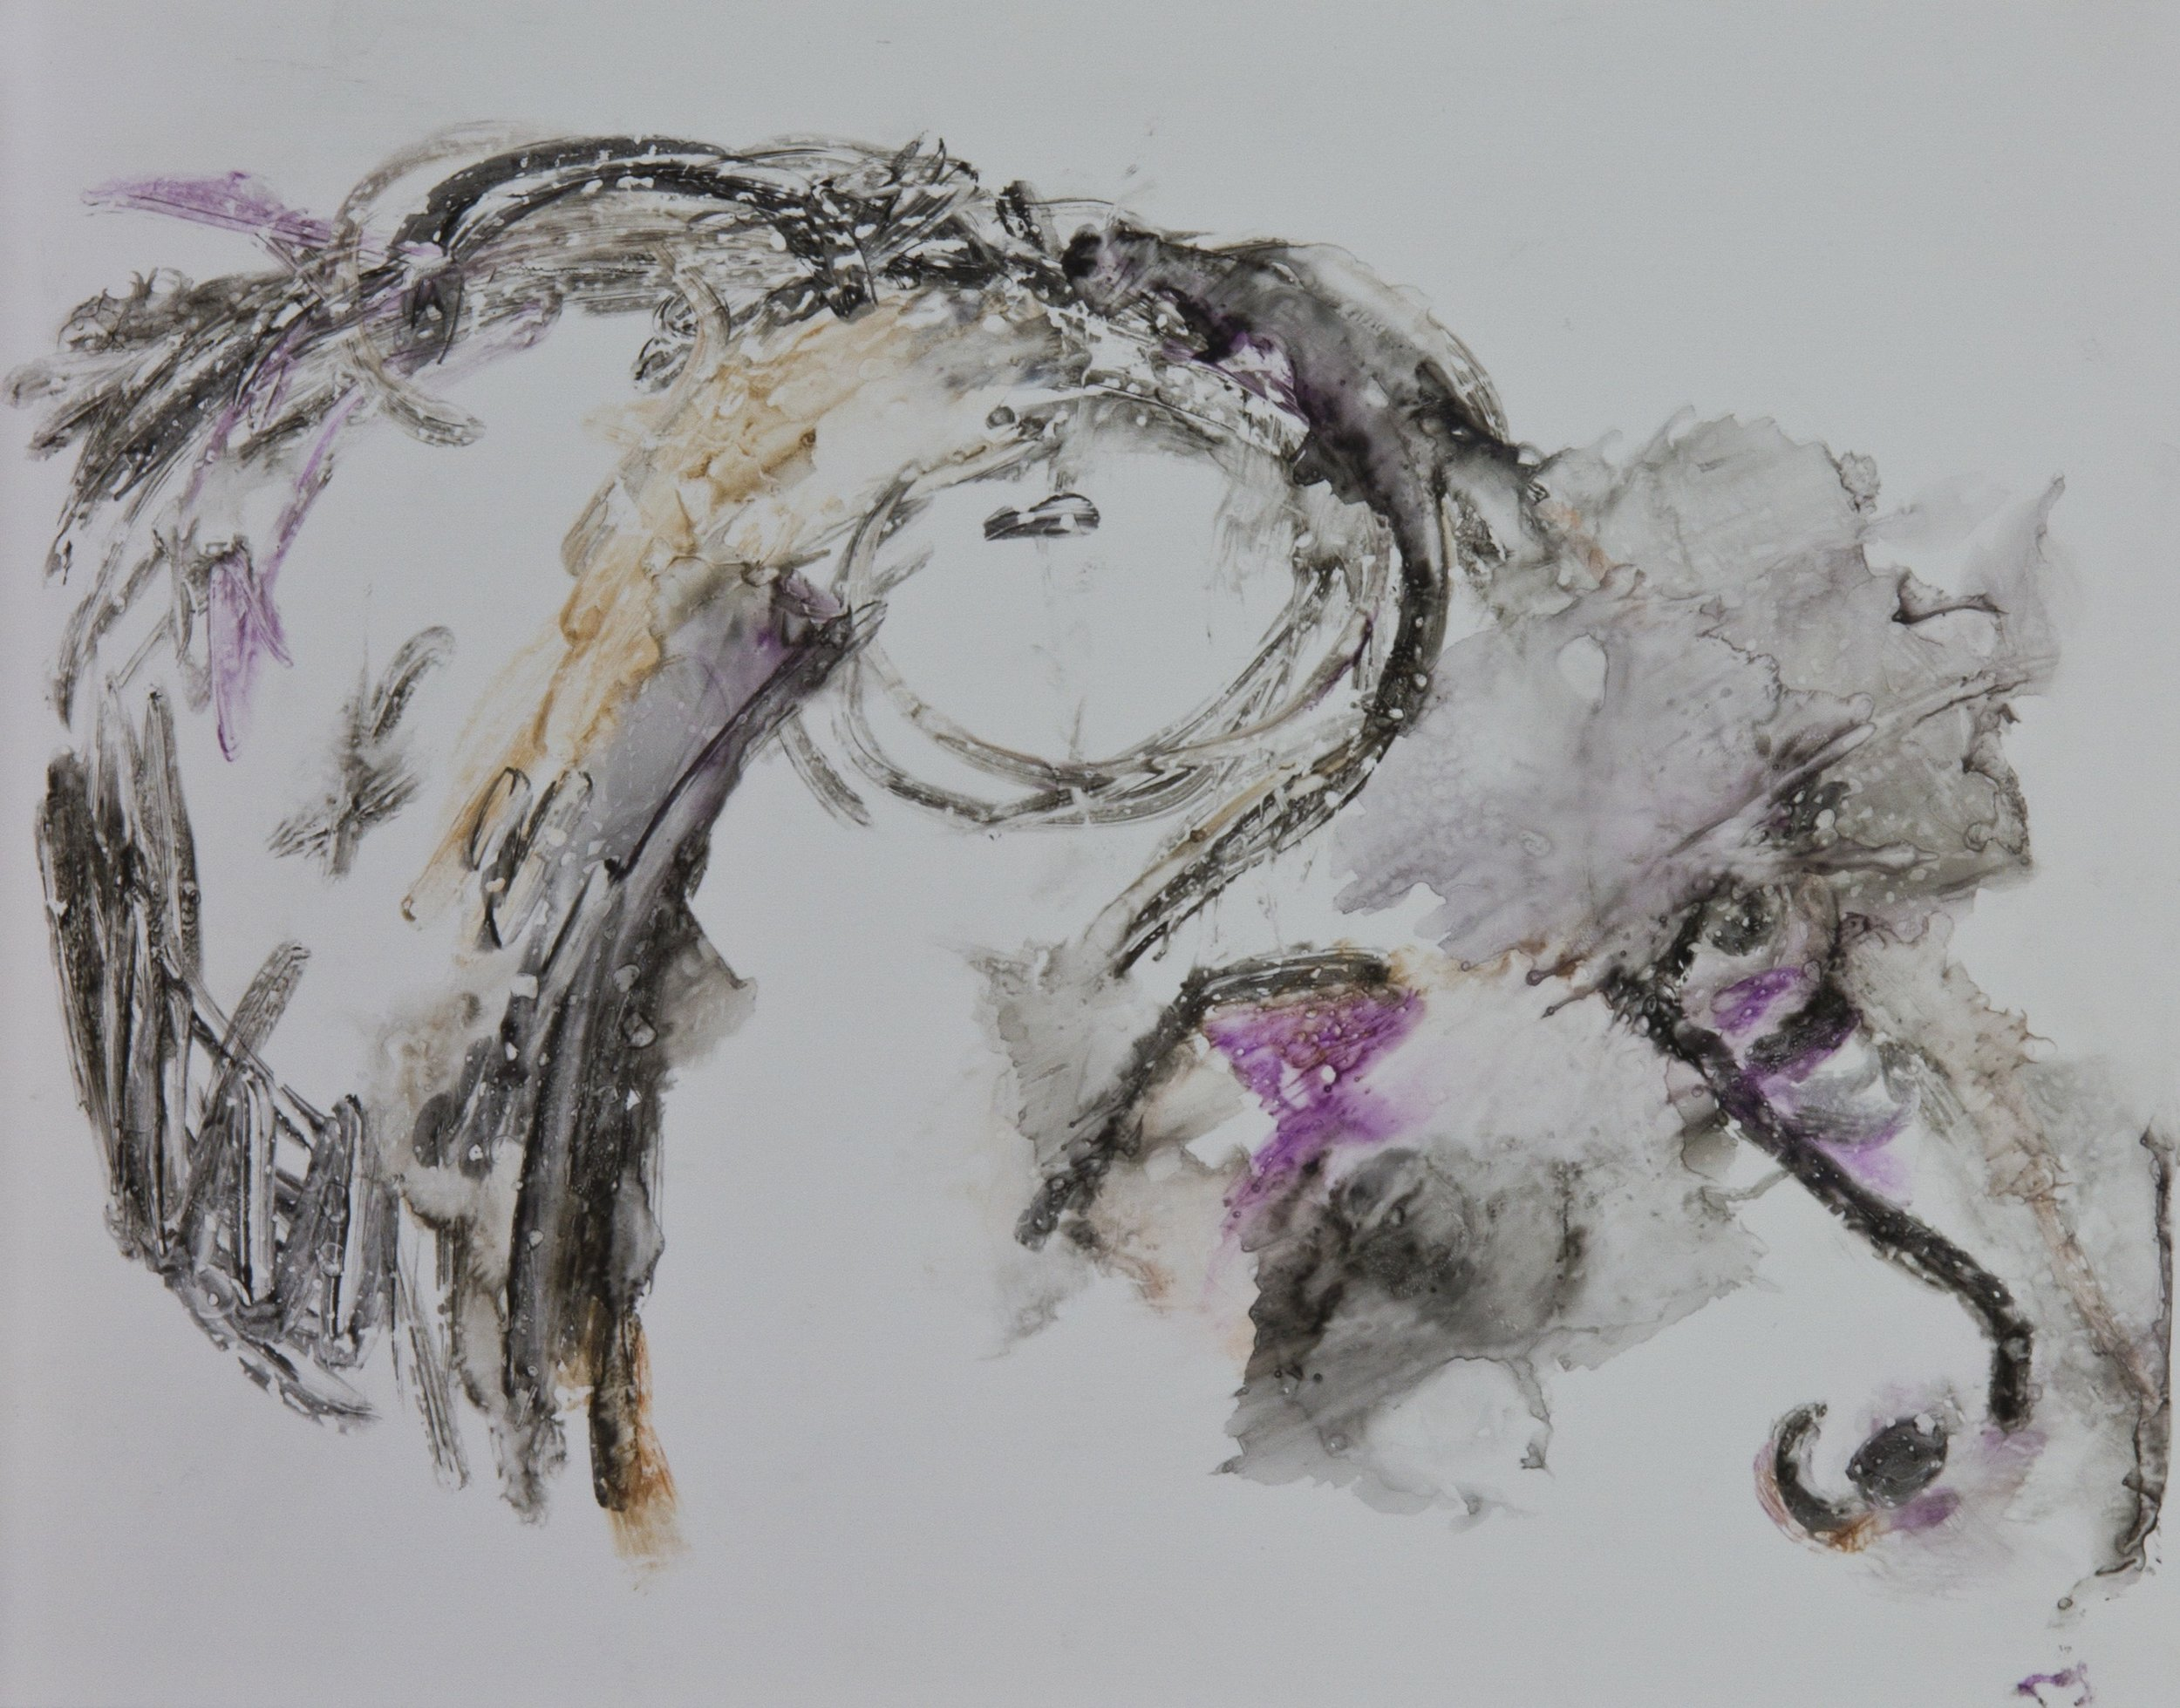 Acts 13, 2010, watercolor monotype on polypropylene, 11x14 inches